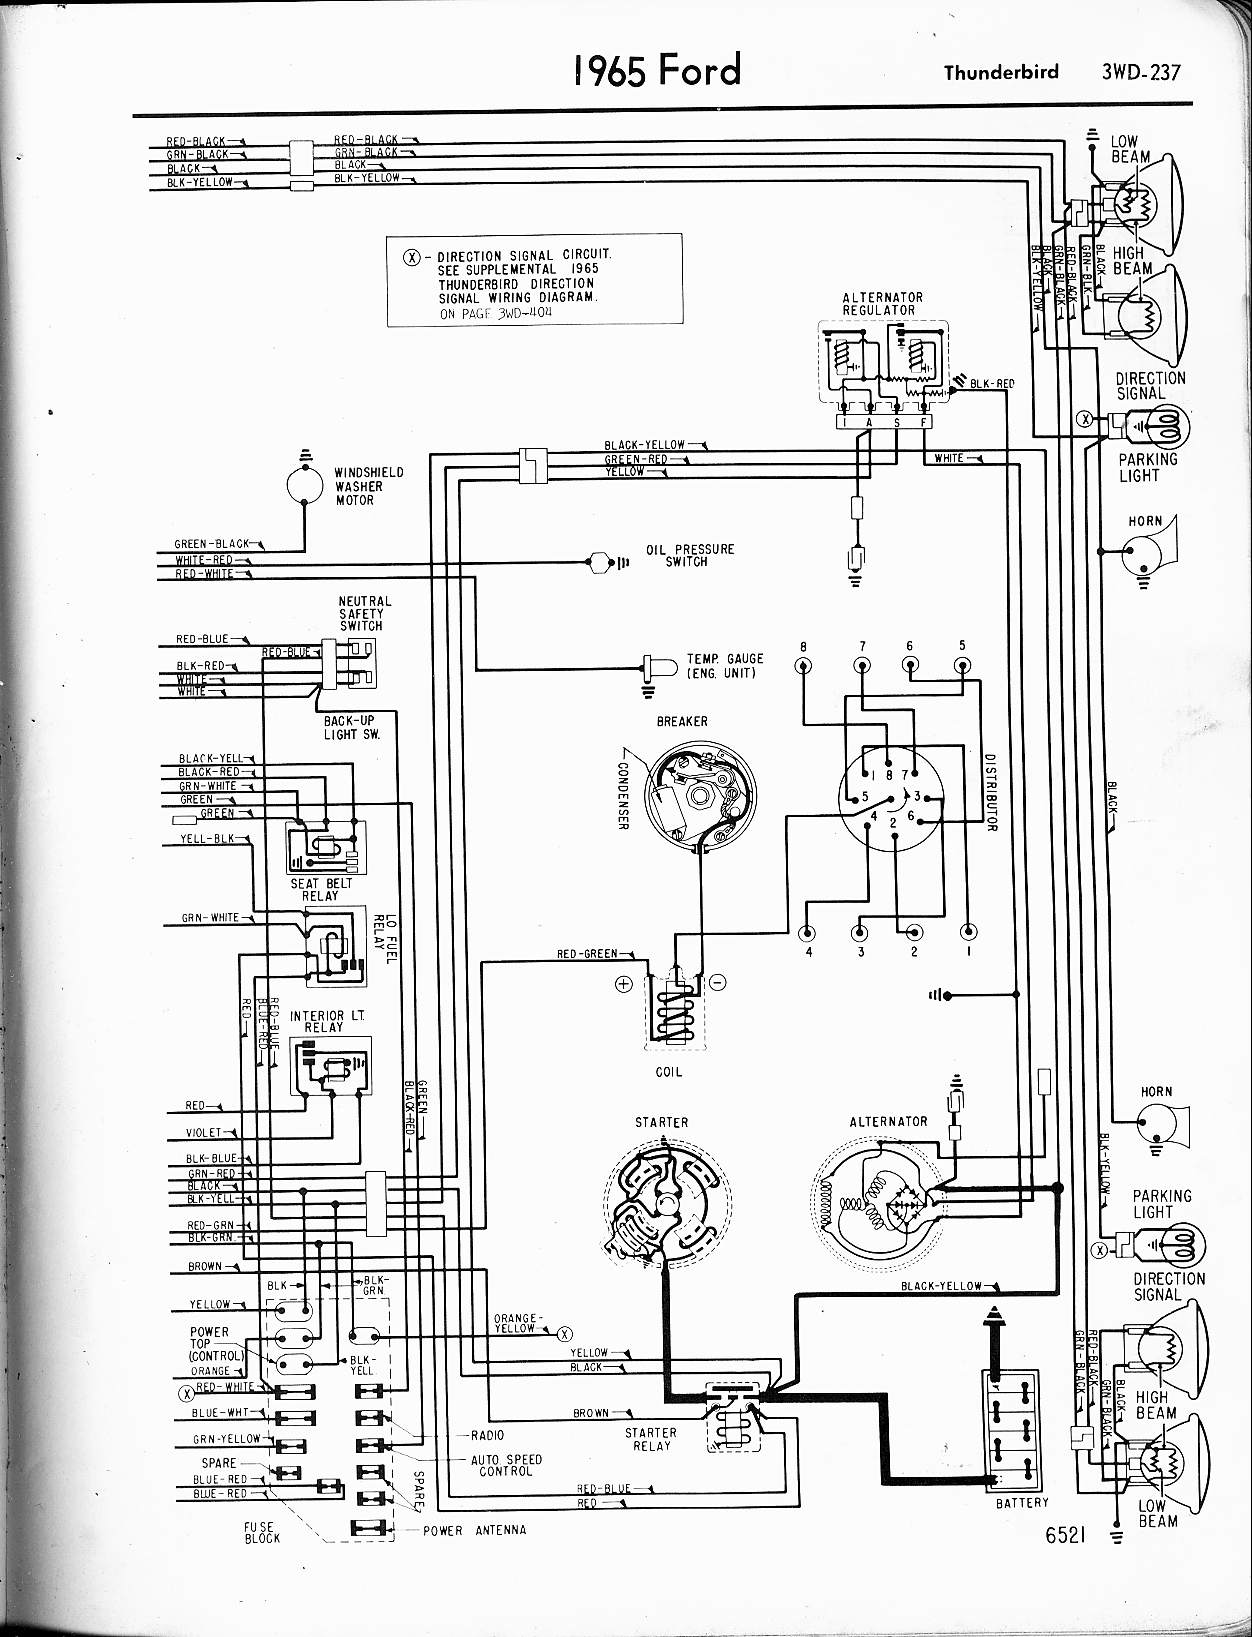 Ford Fairlane Torino Wiring Diagrams Just Data Super Duty Diagram 1970 1967 500 1956 Simple